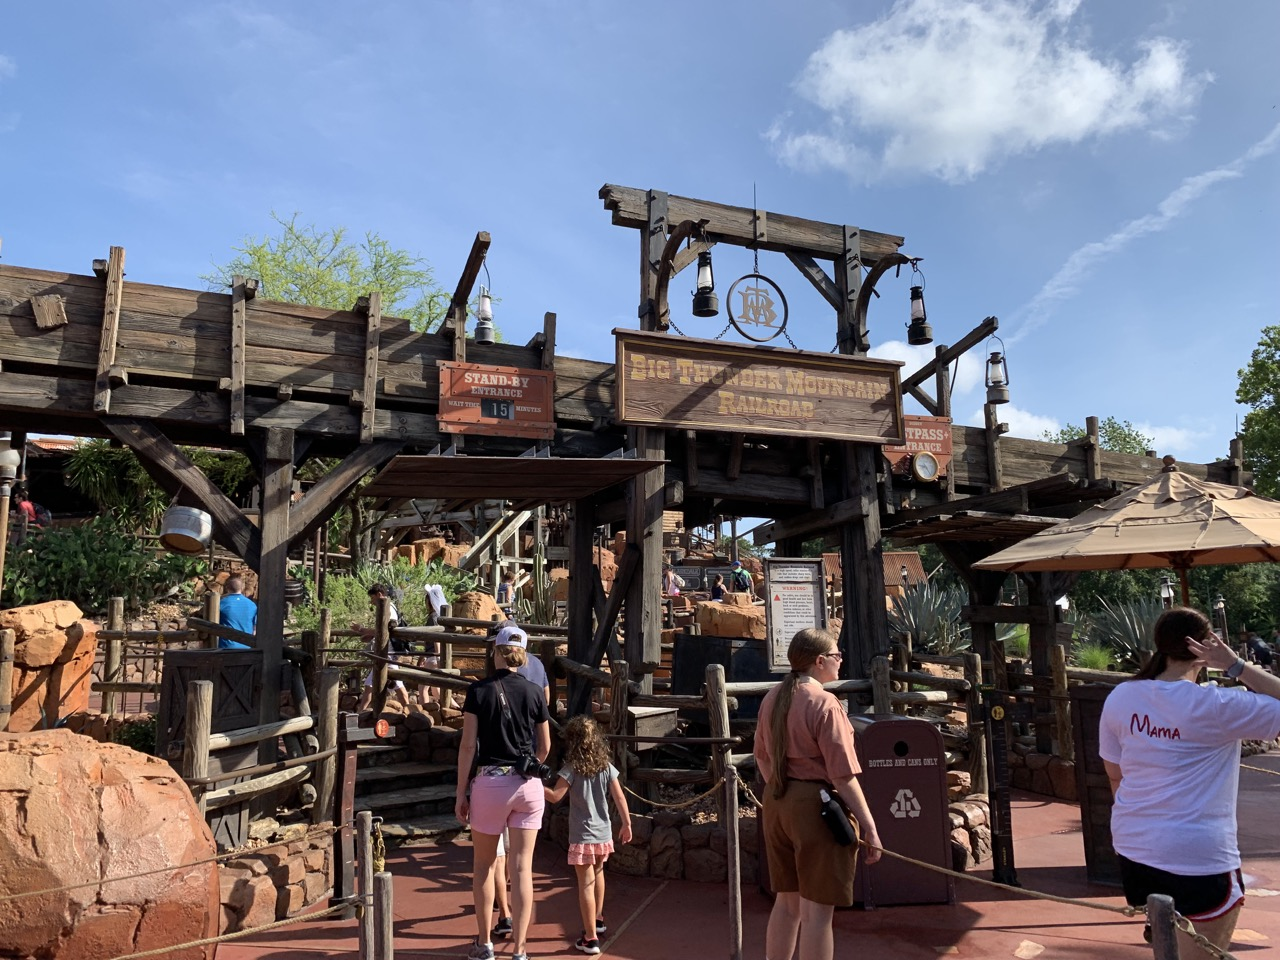 disney world trip report early summer 2019 day five 28 big thunder mountain railroad.jpeg